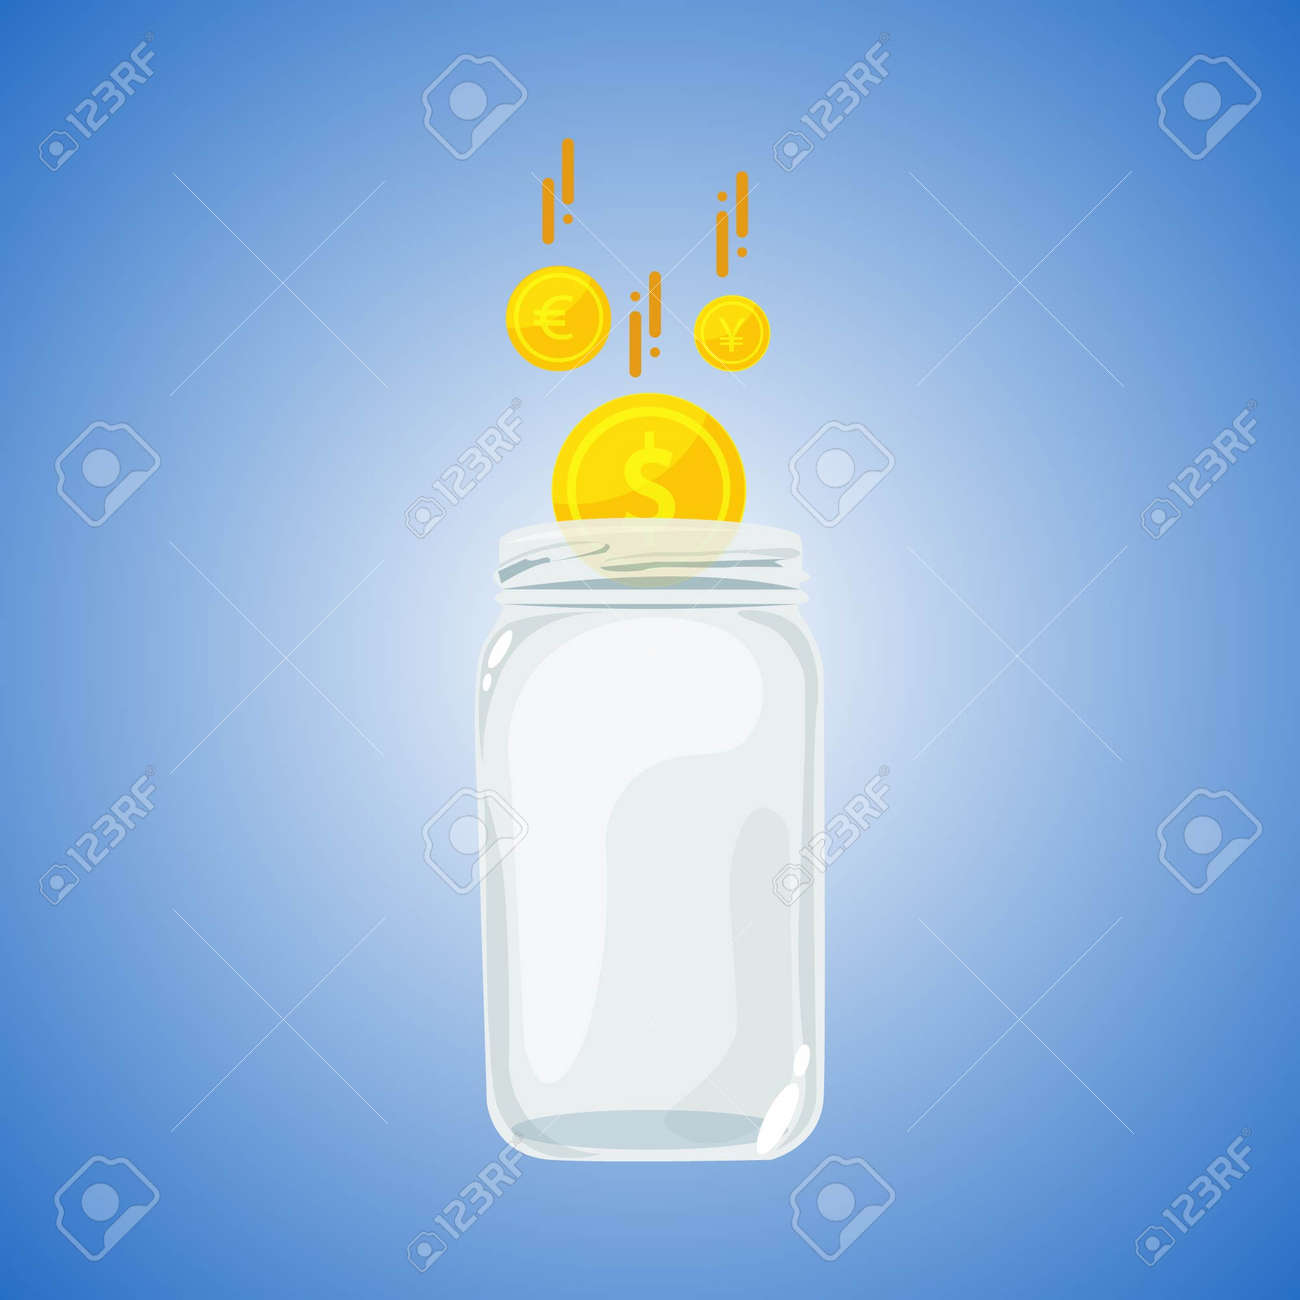 Realistic glass piggy bank isolated on blue background. Piggy bank and dollar, euro and yen coins icon. - 164571578